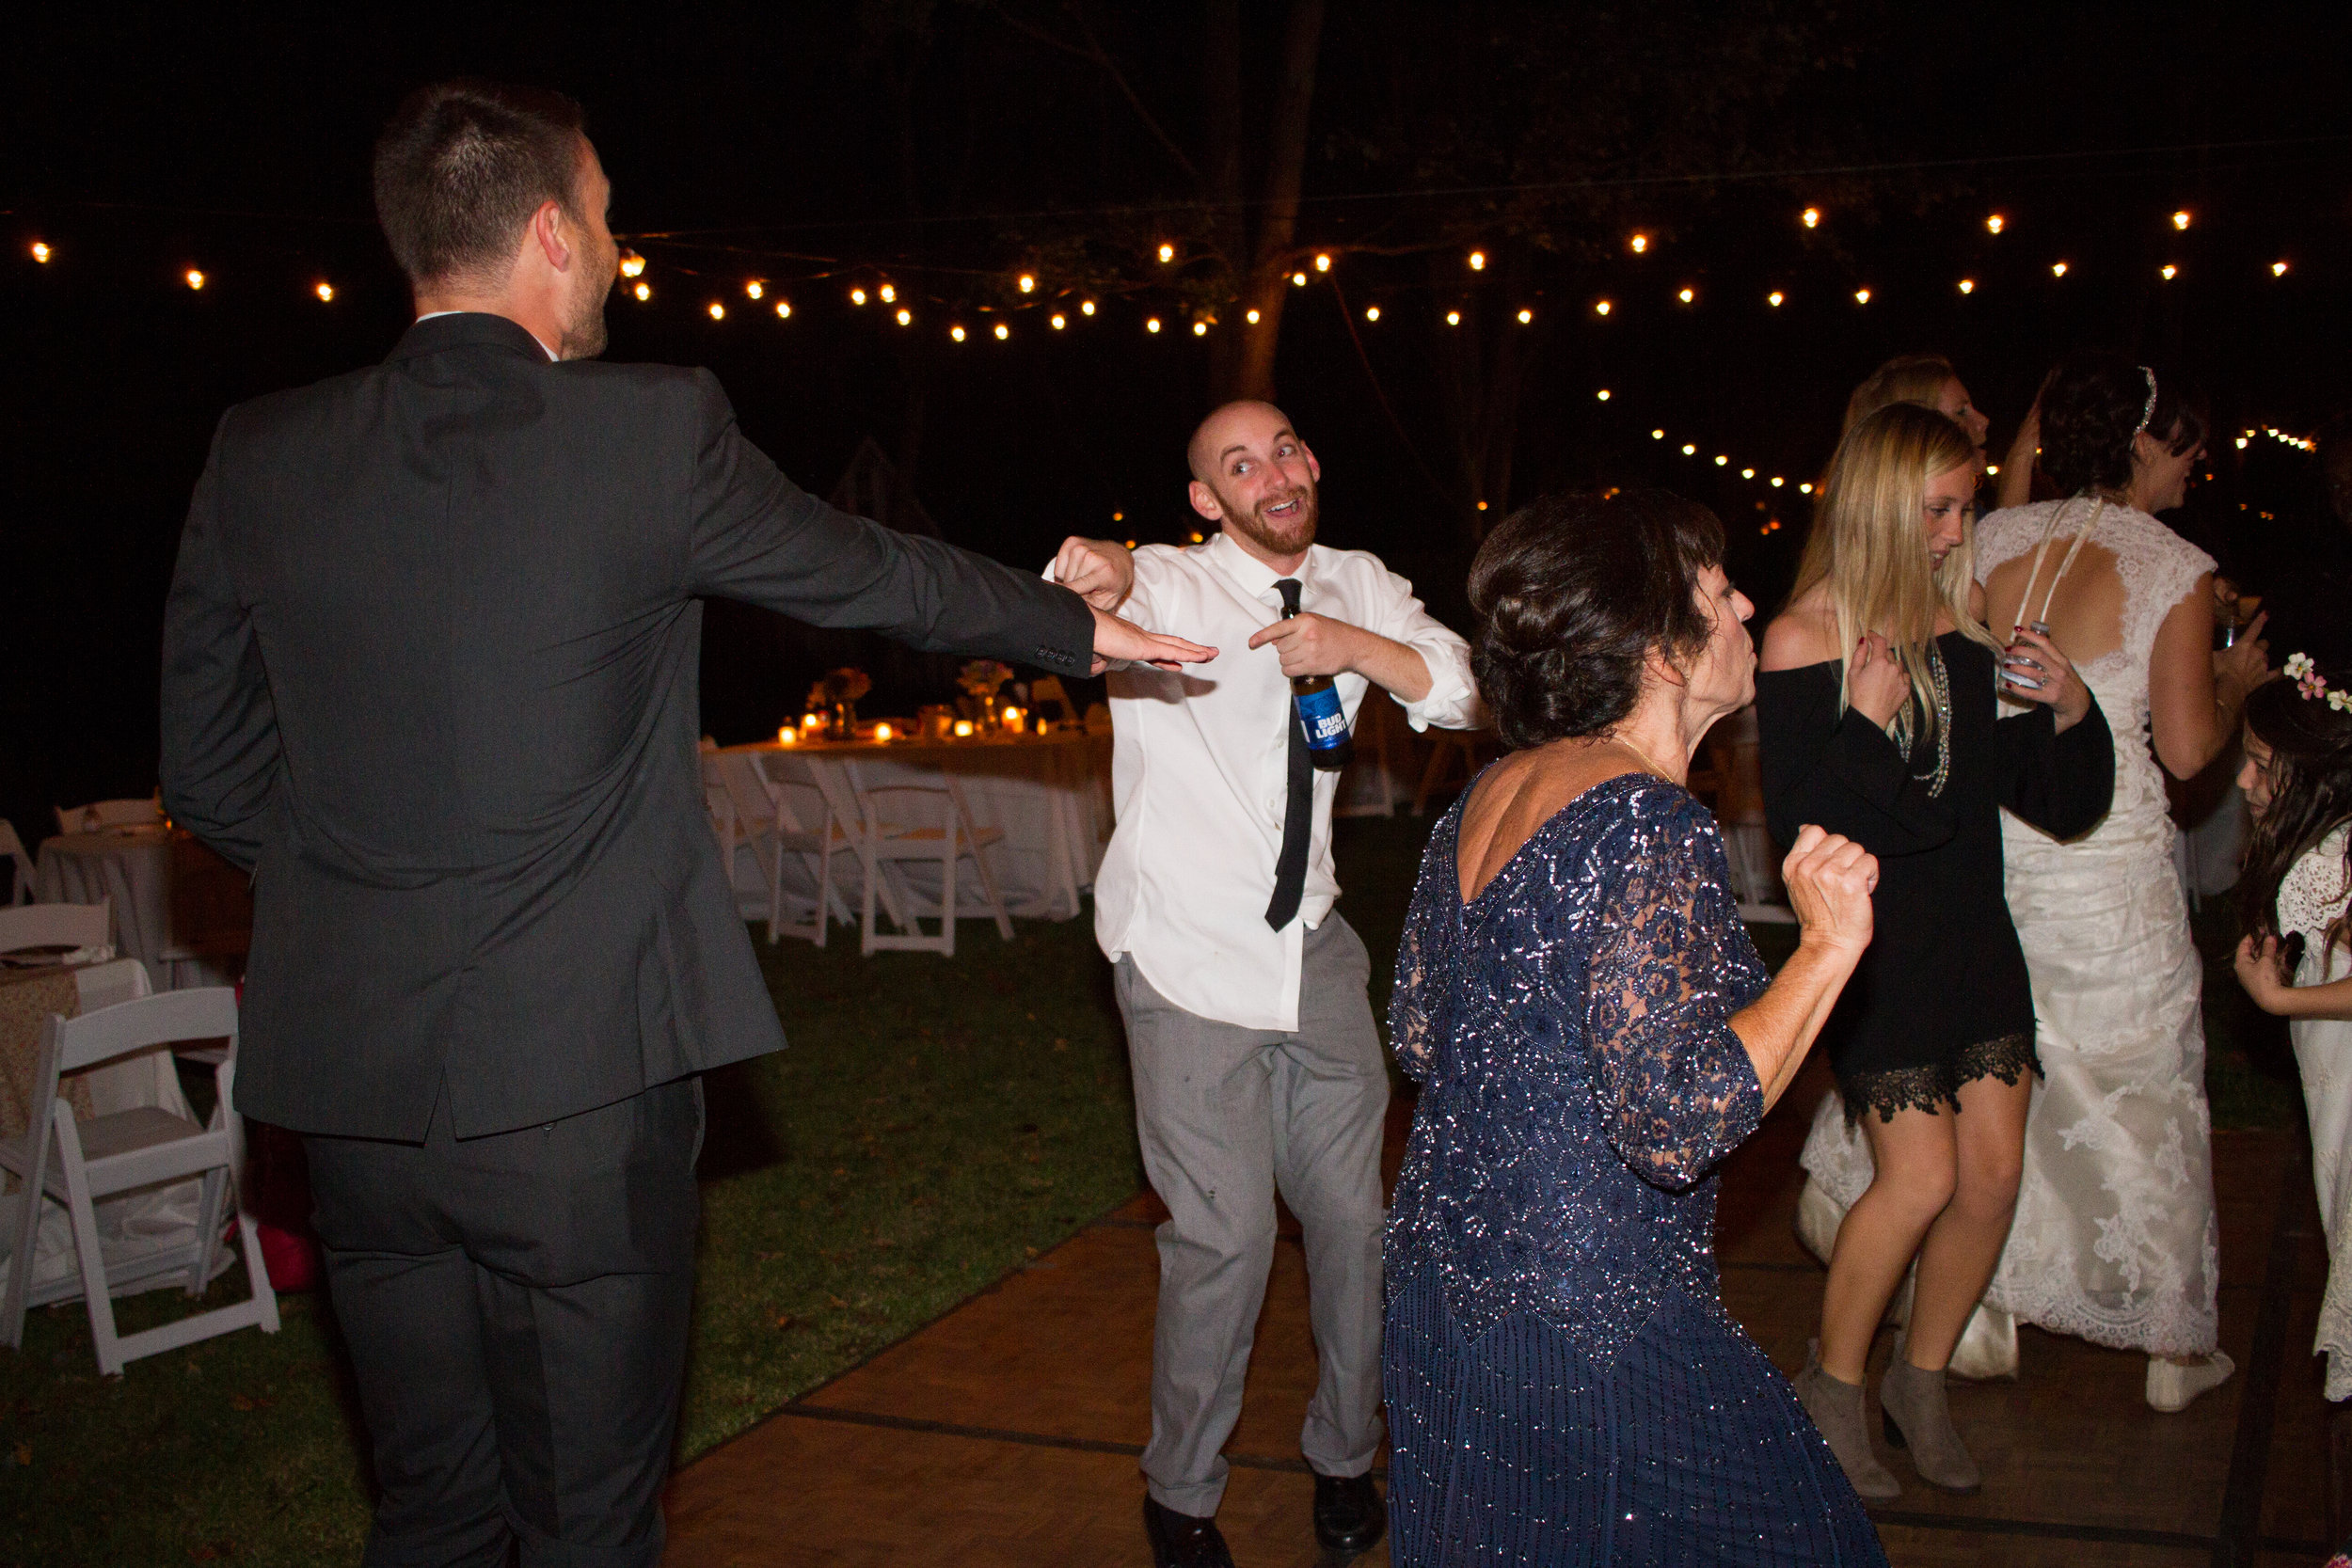 Jacqueline and Shawn Wedding (593 of 597).jpg